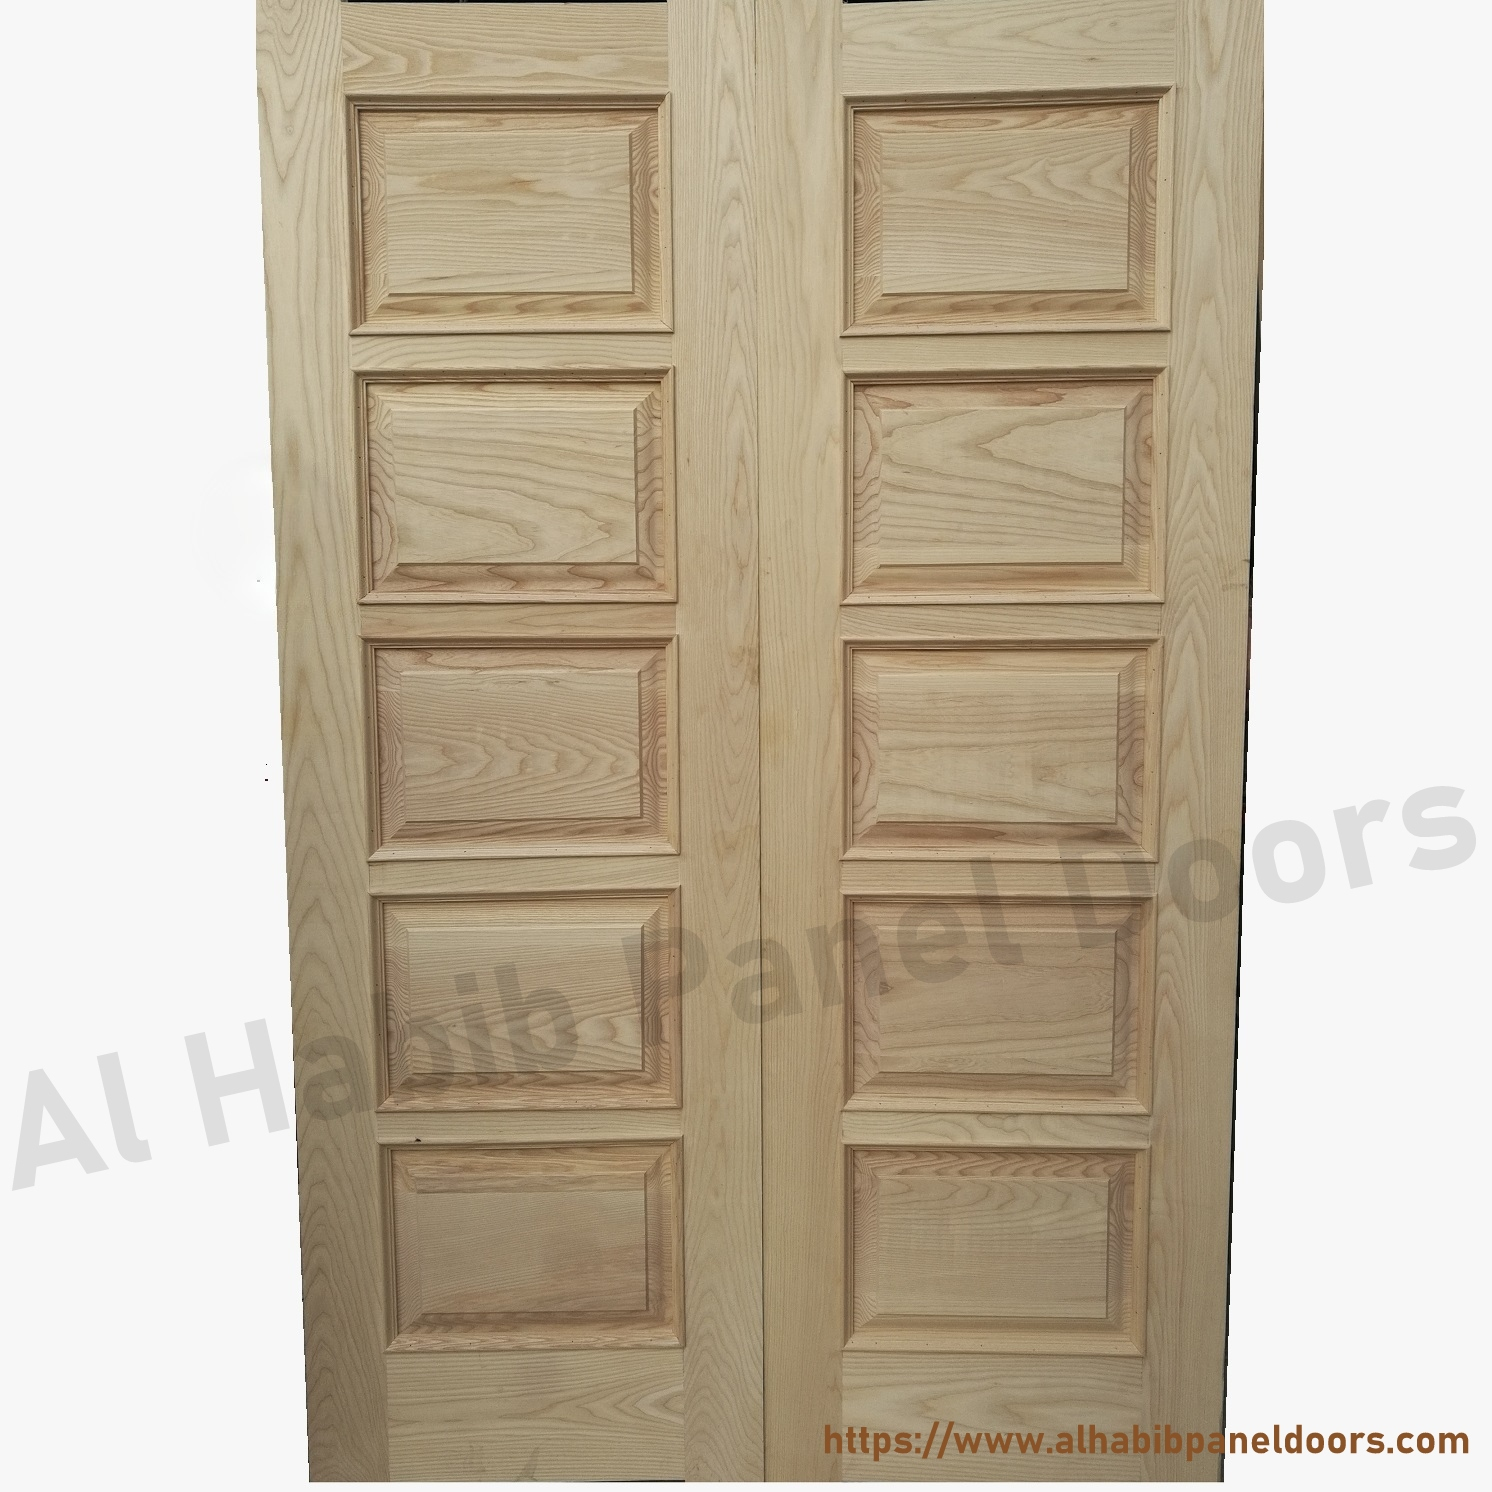 Double door main door designs joy studio design gallery for Wooden door designs for main door